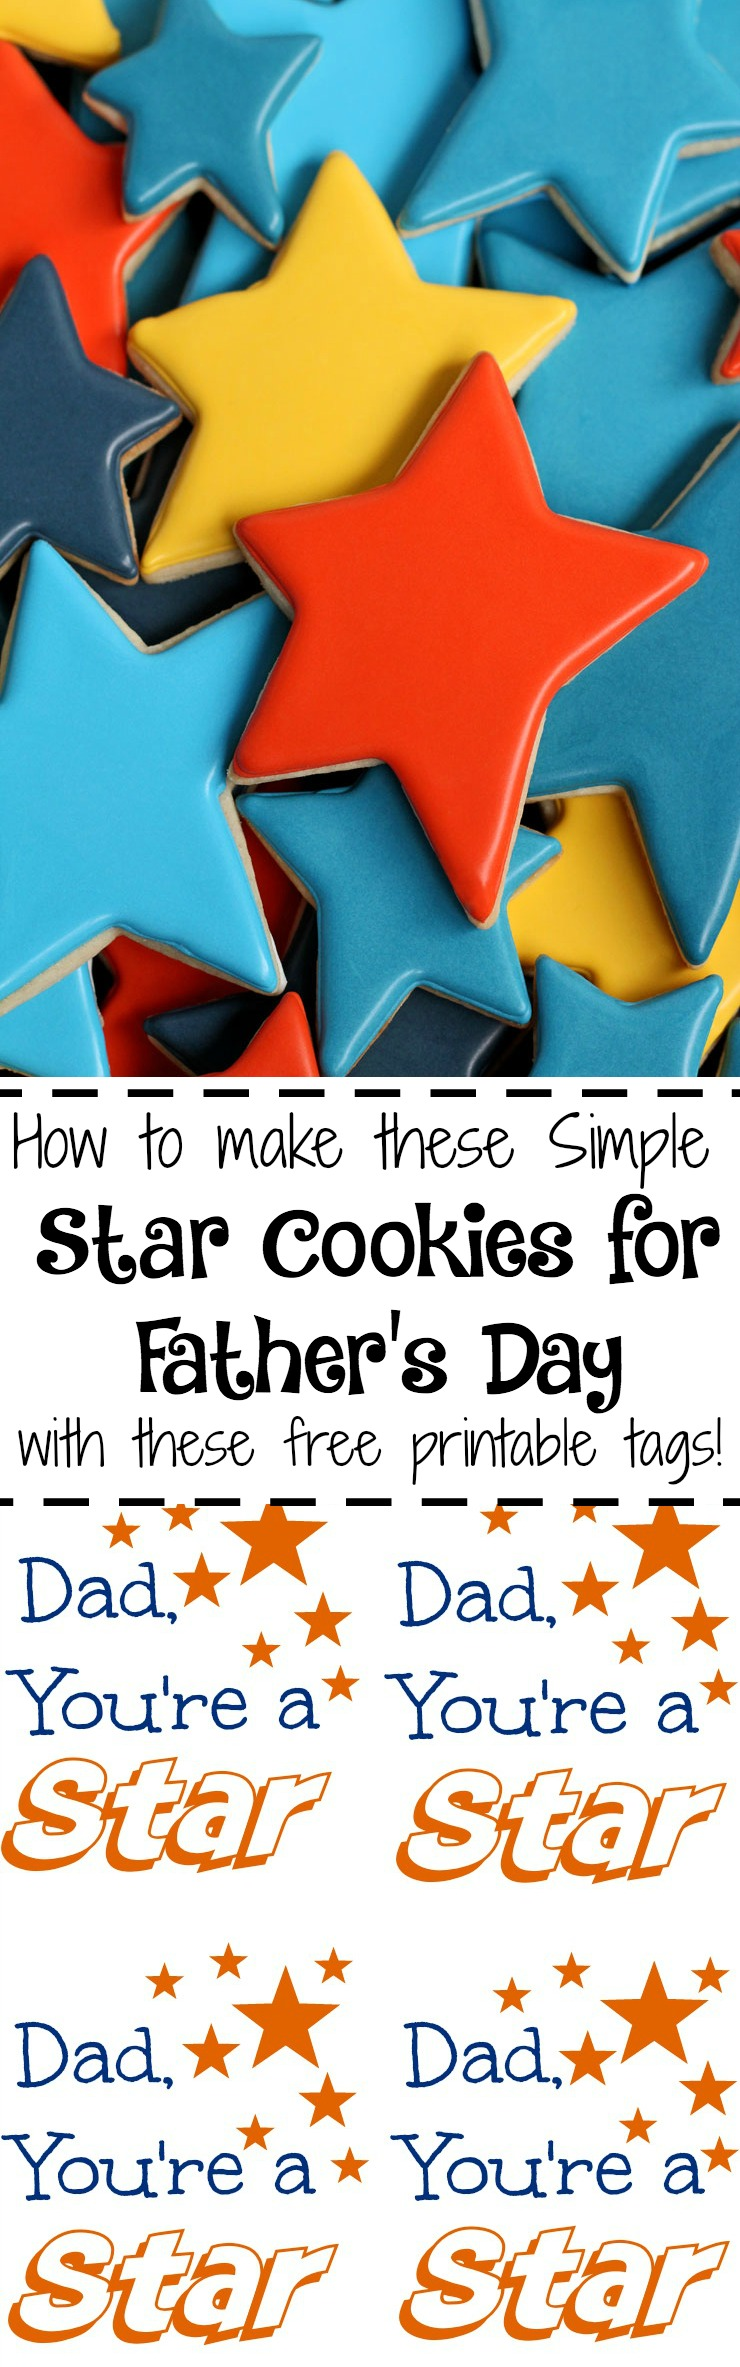 Dad You're a Star Cookies with Free Printable Tags www.thebearfootbaker.com